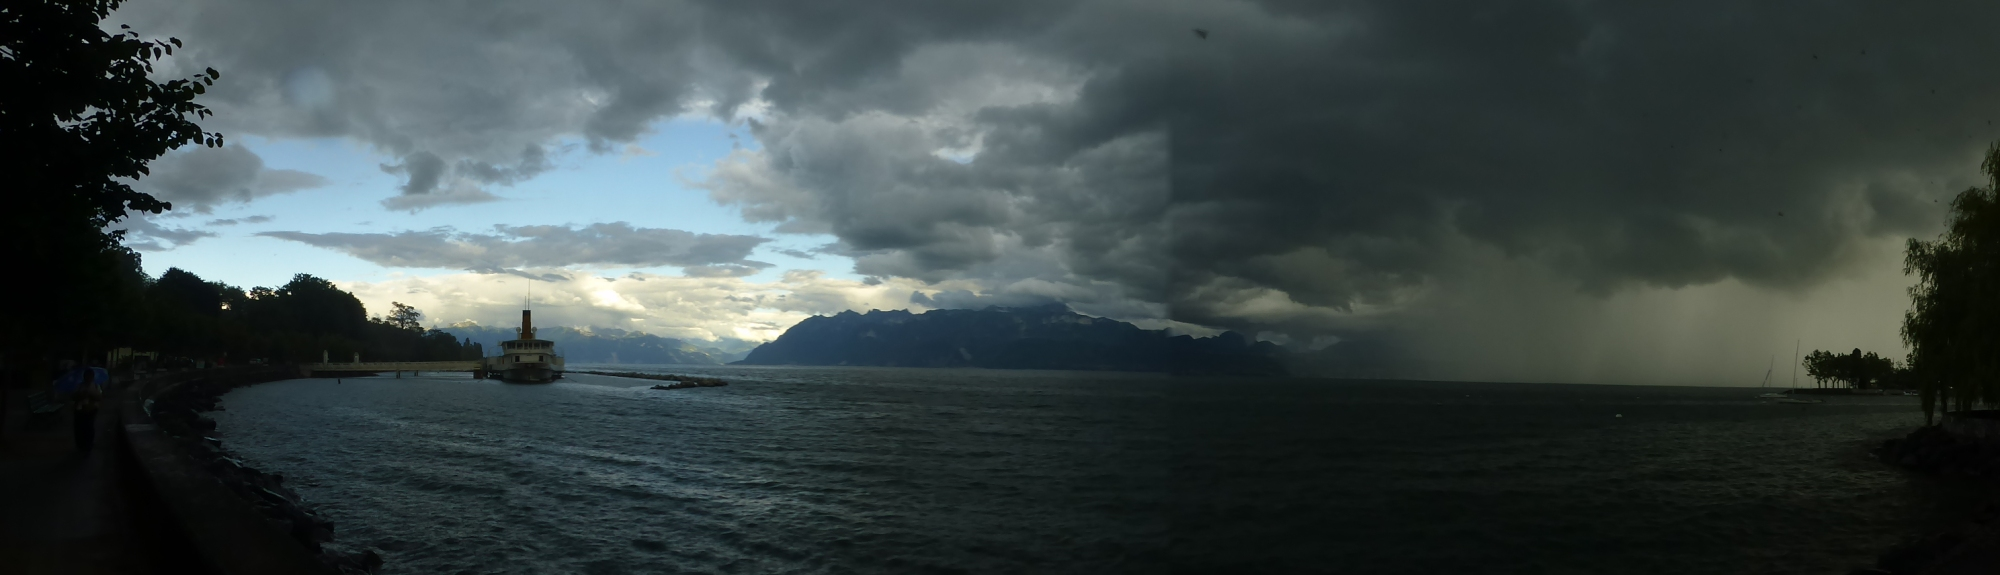 Lausanne: storm rolling over the lake